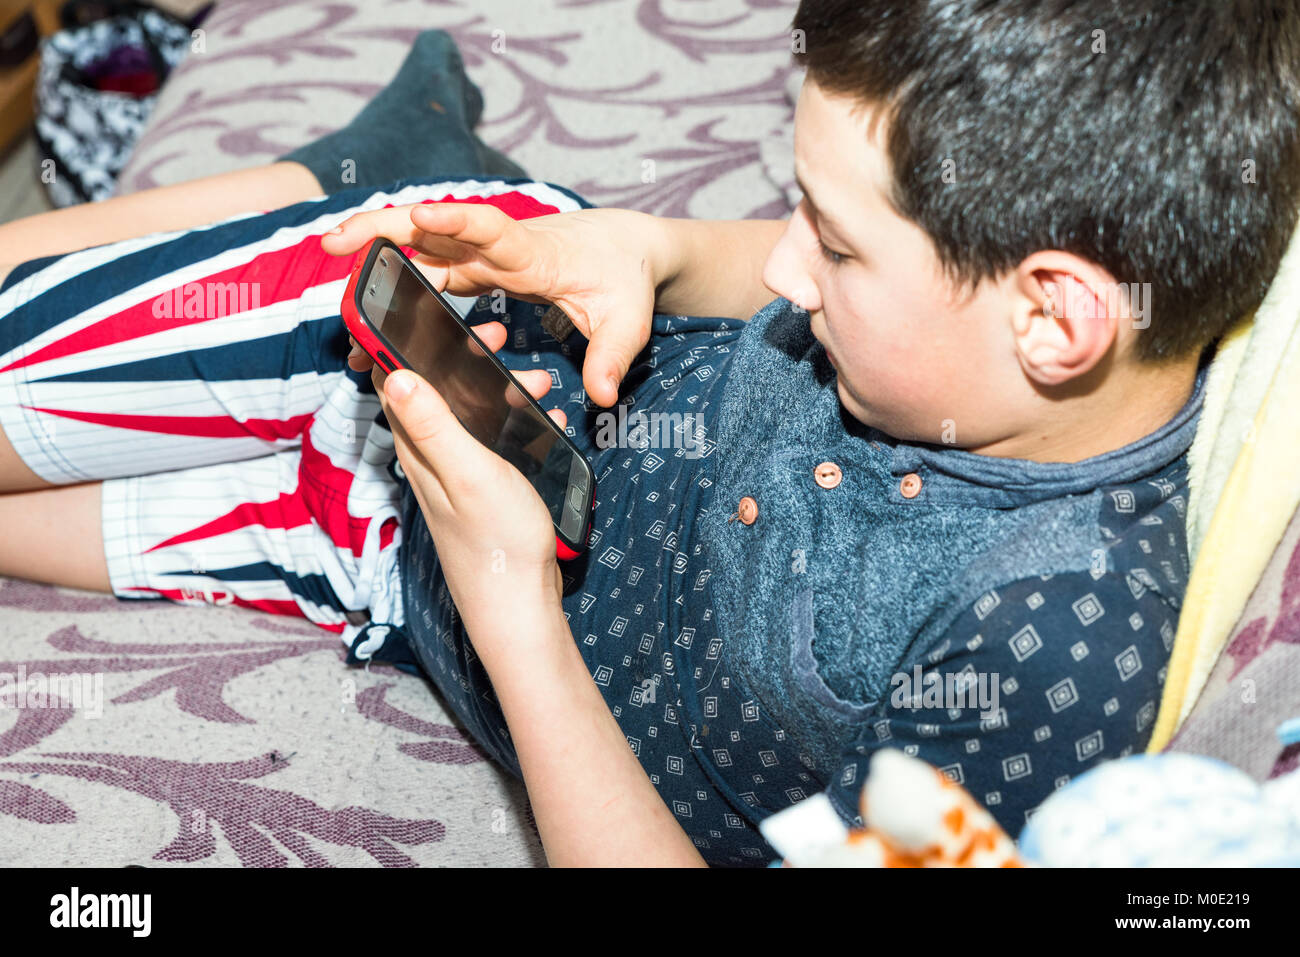 Teen boy holding smartphone and playing games laying on sofa. - Stock Image